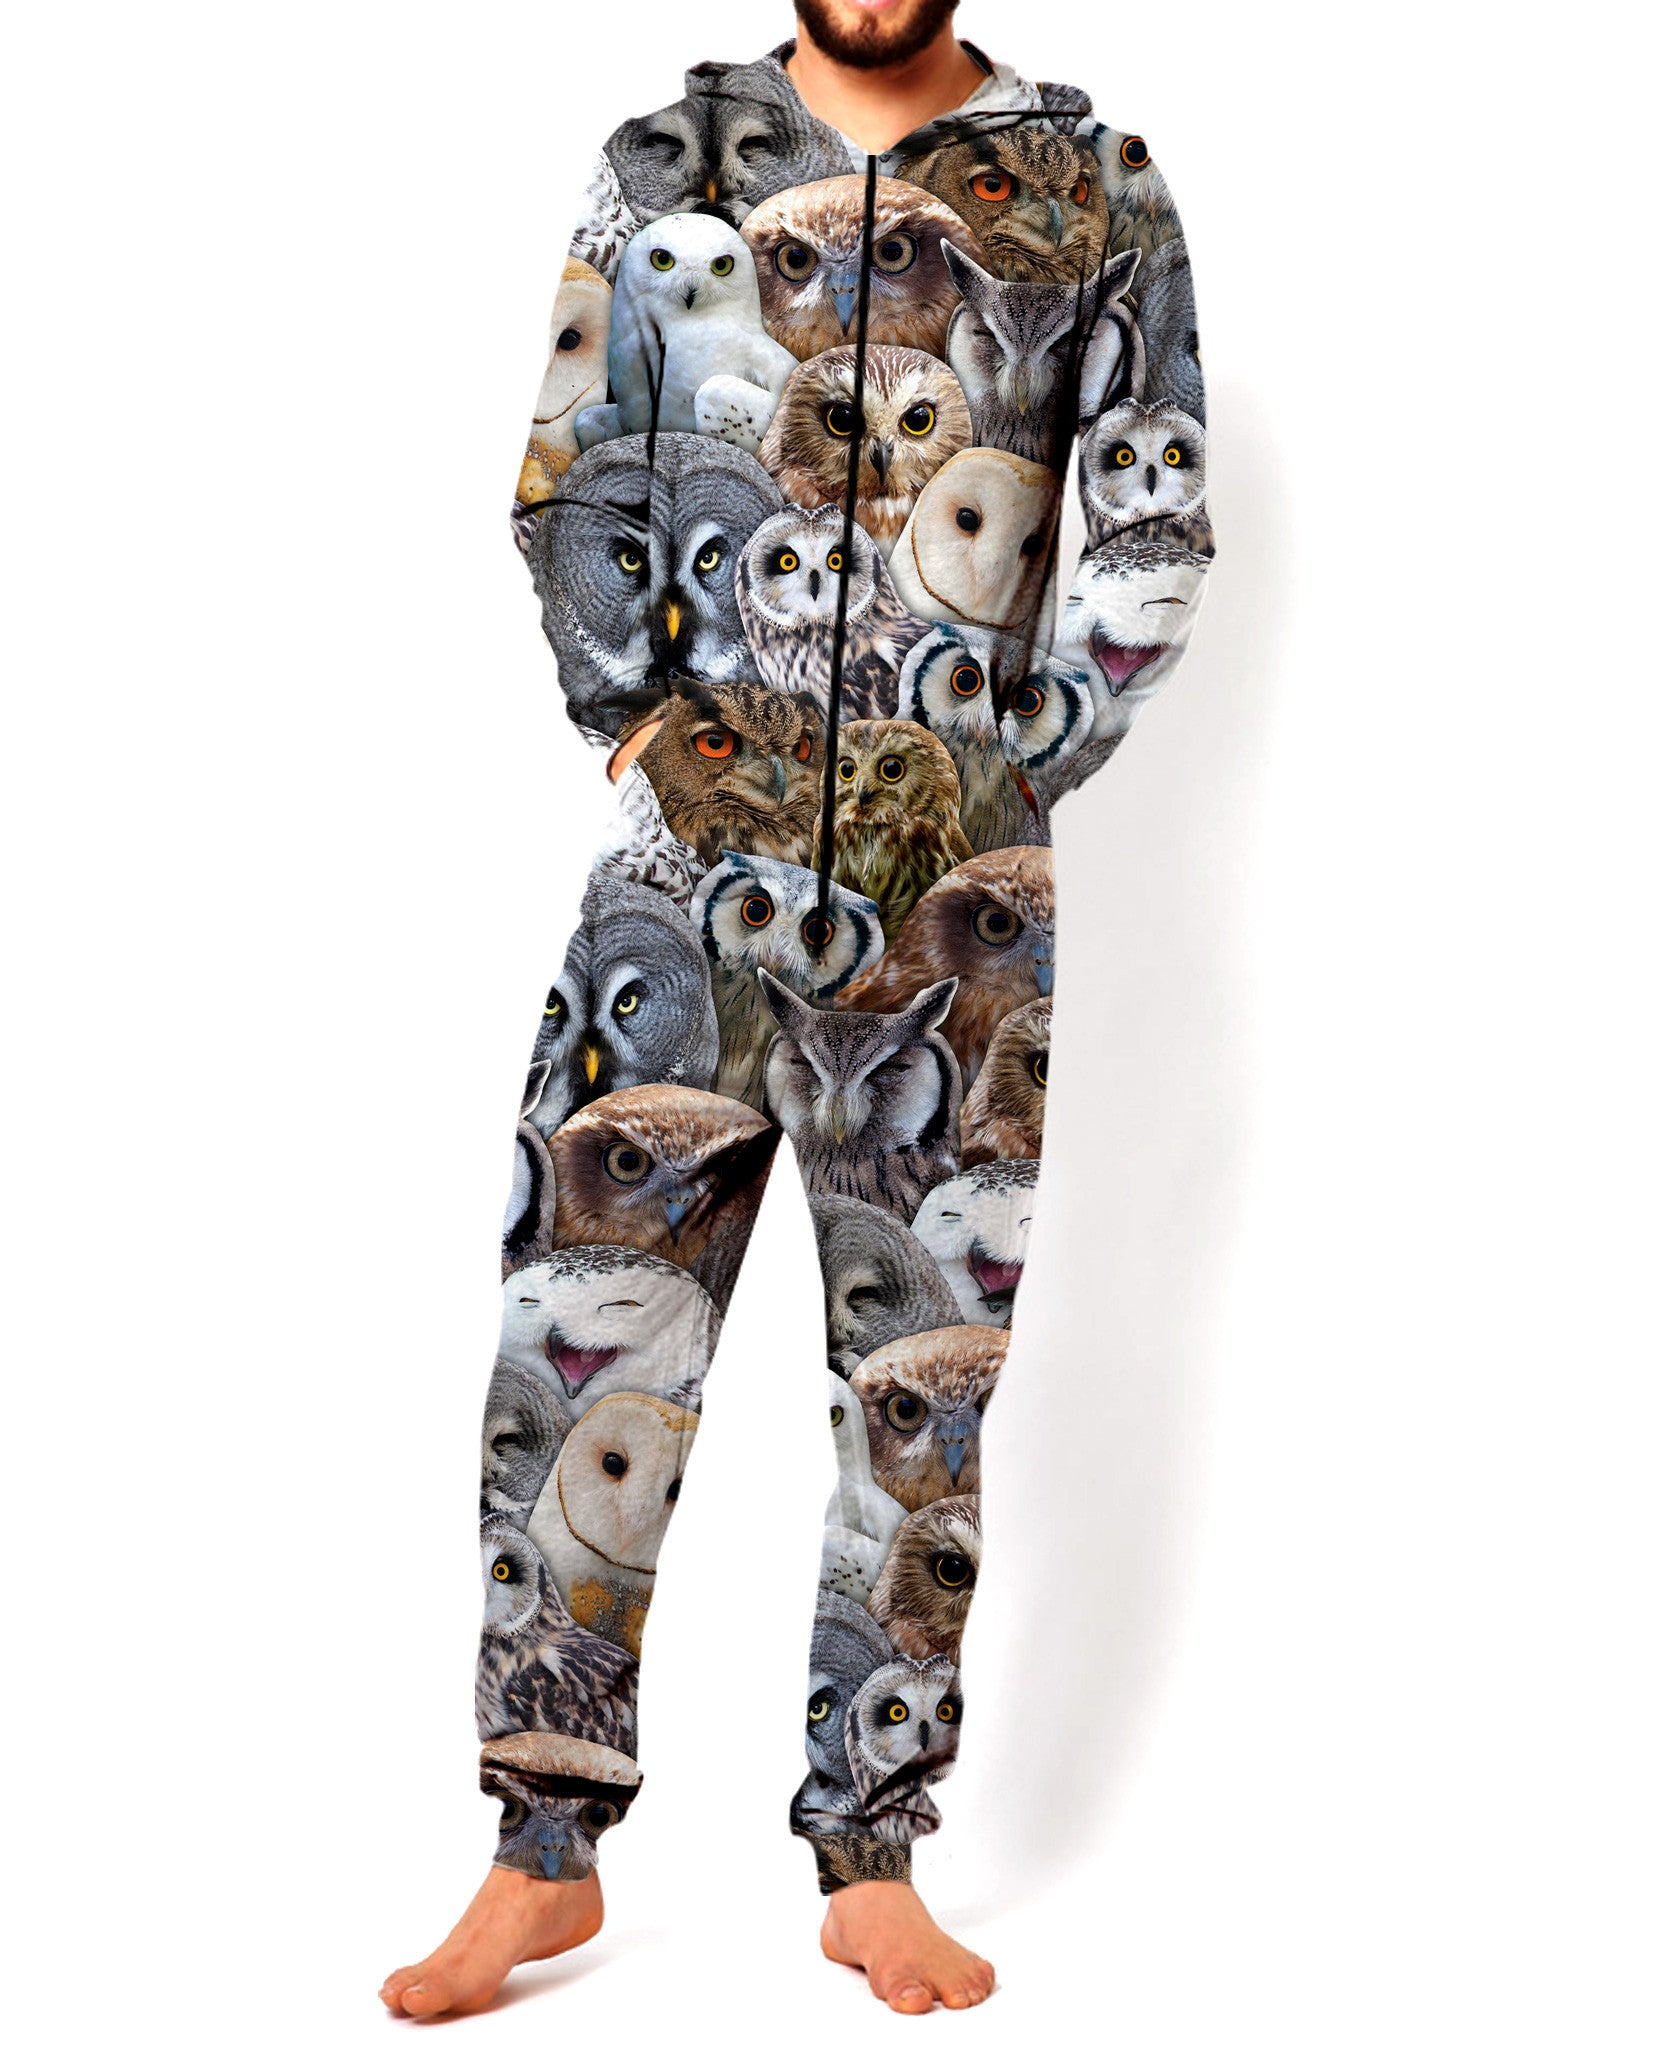 Owl Collage Onesie